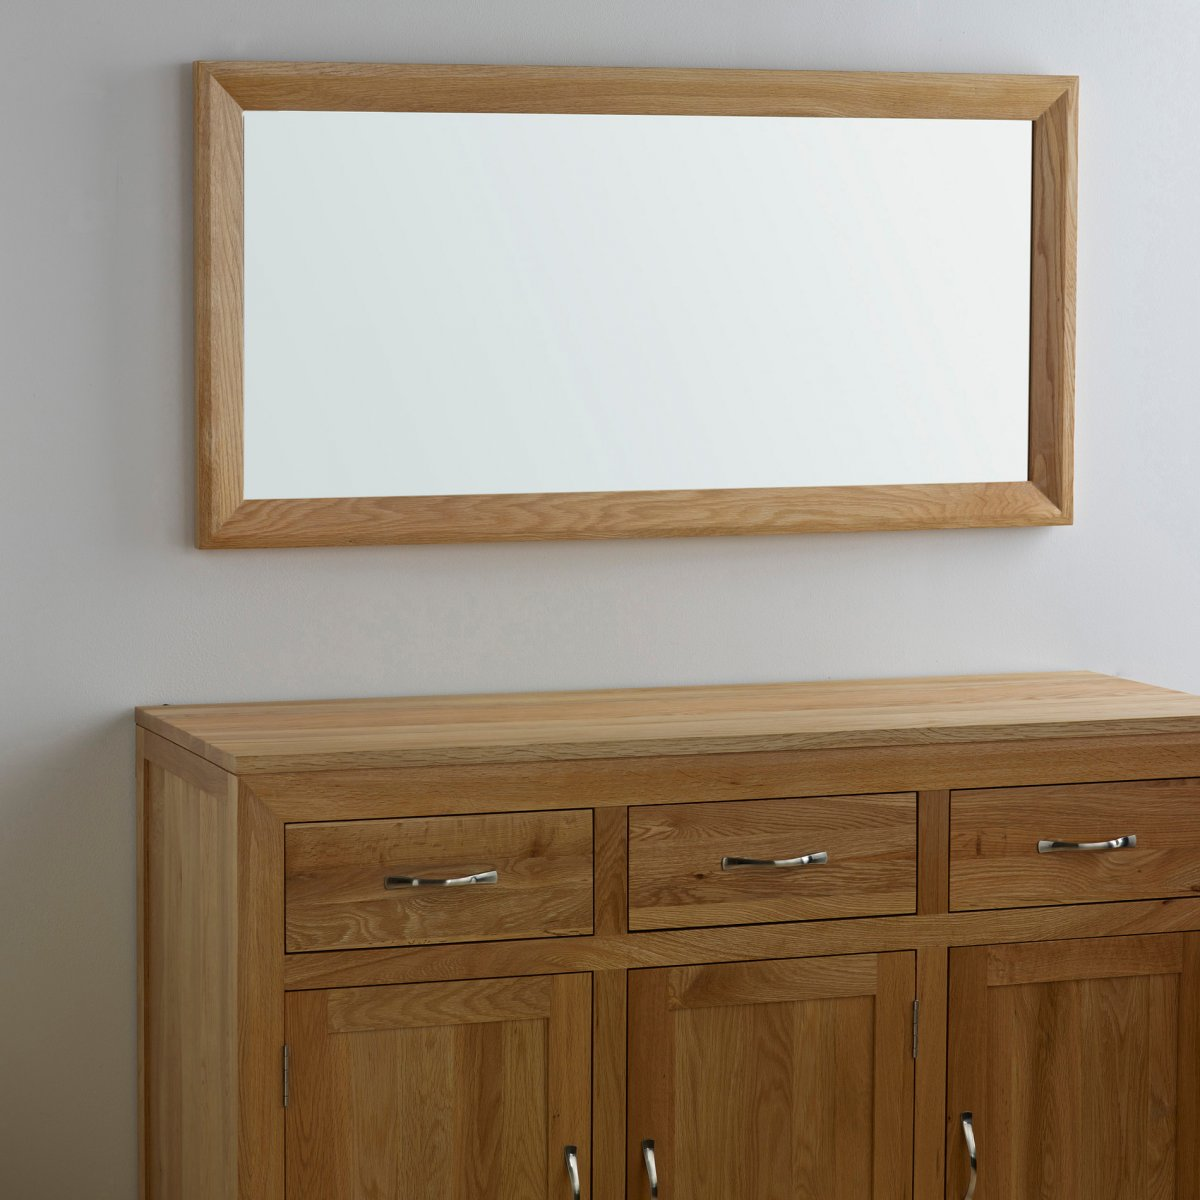 Bevel natural solid oak wall mirror by oak furniture land bevel natural solid oak 1200mm x 600mm wall mirror amipublicfo Choice Image